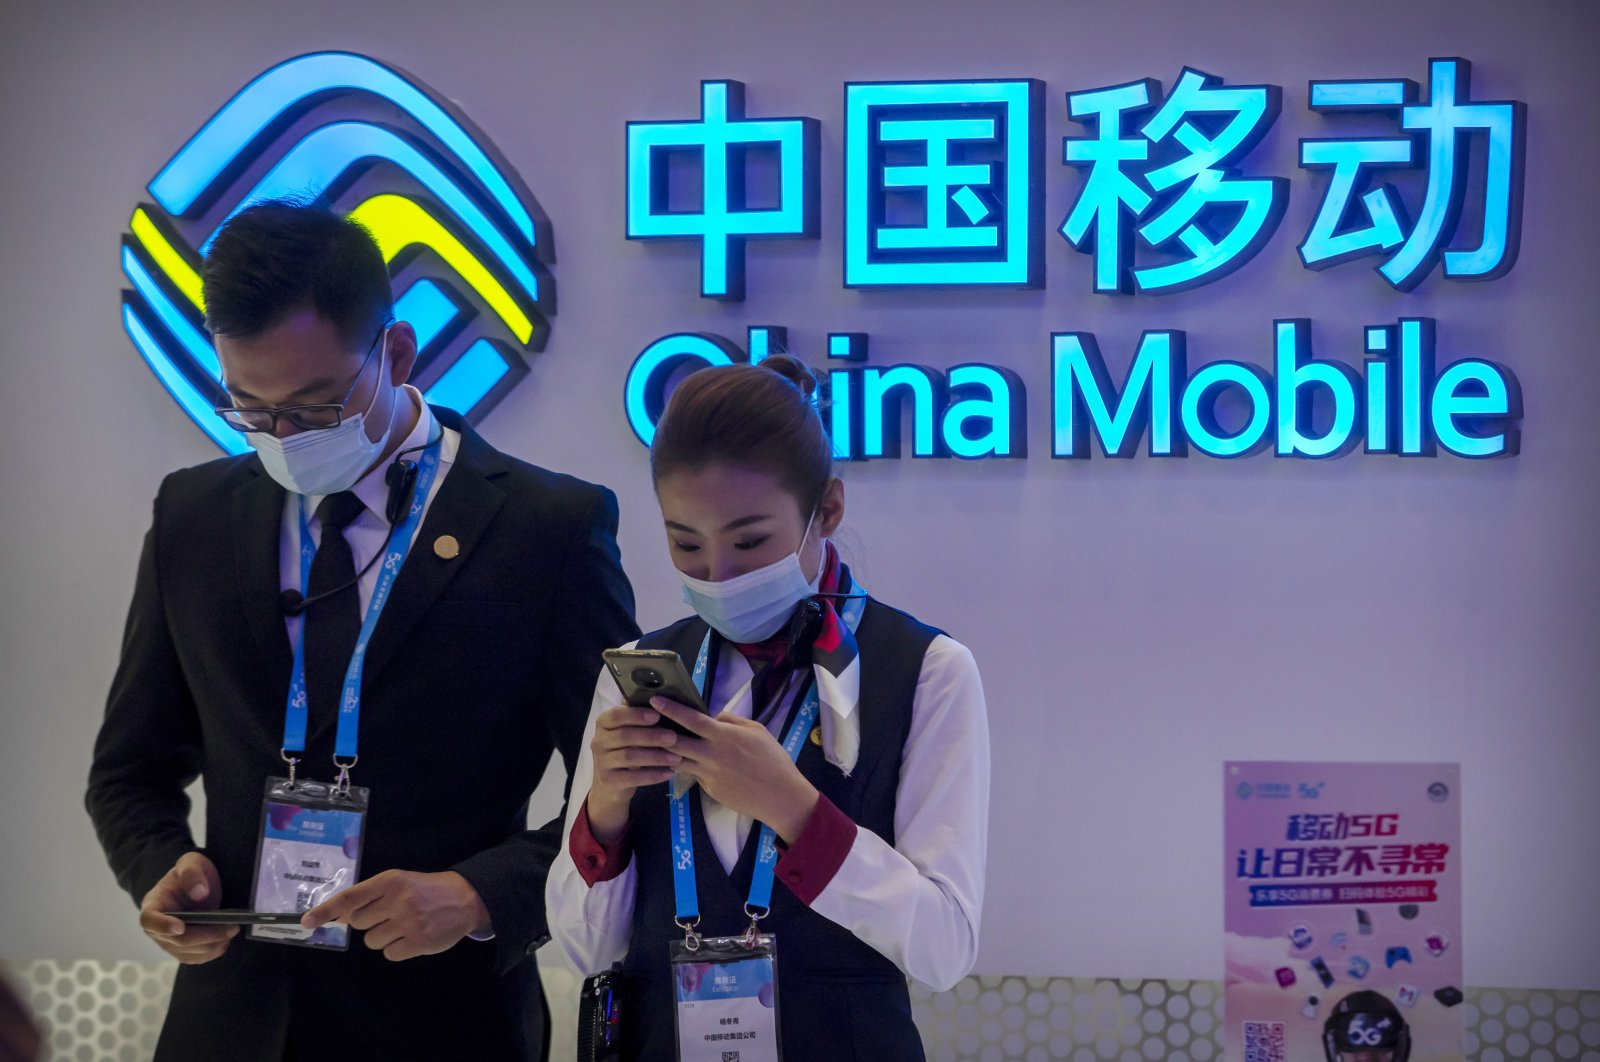 Staff members wearing face masks to protect against the spread of the coronavirus use their smartphones near a sign for Chinese telecommunications firm China Mobile at the PT Expo in Beijing, China, Oct. 14, 2020. (AP Photo)